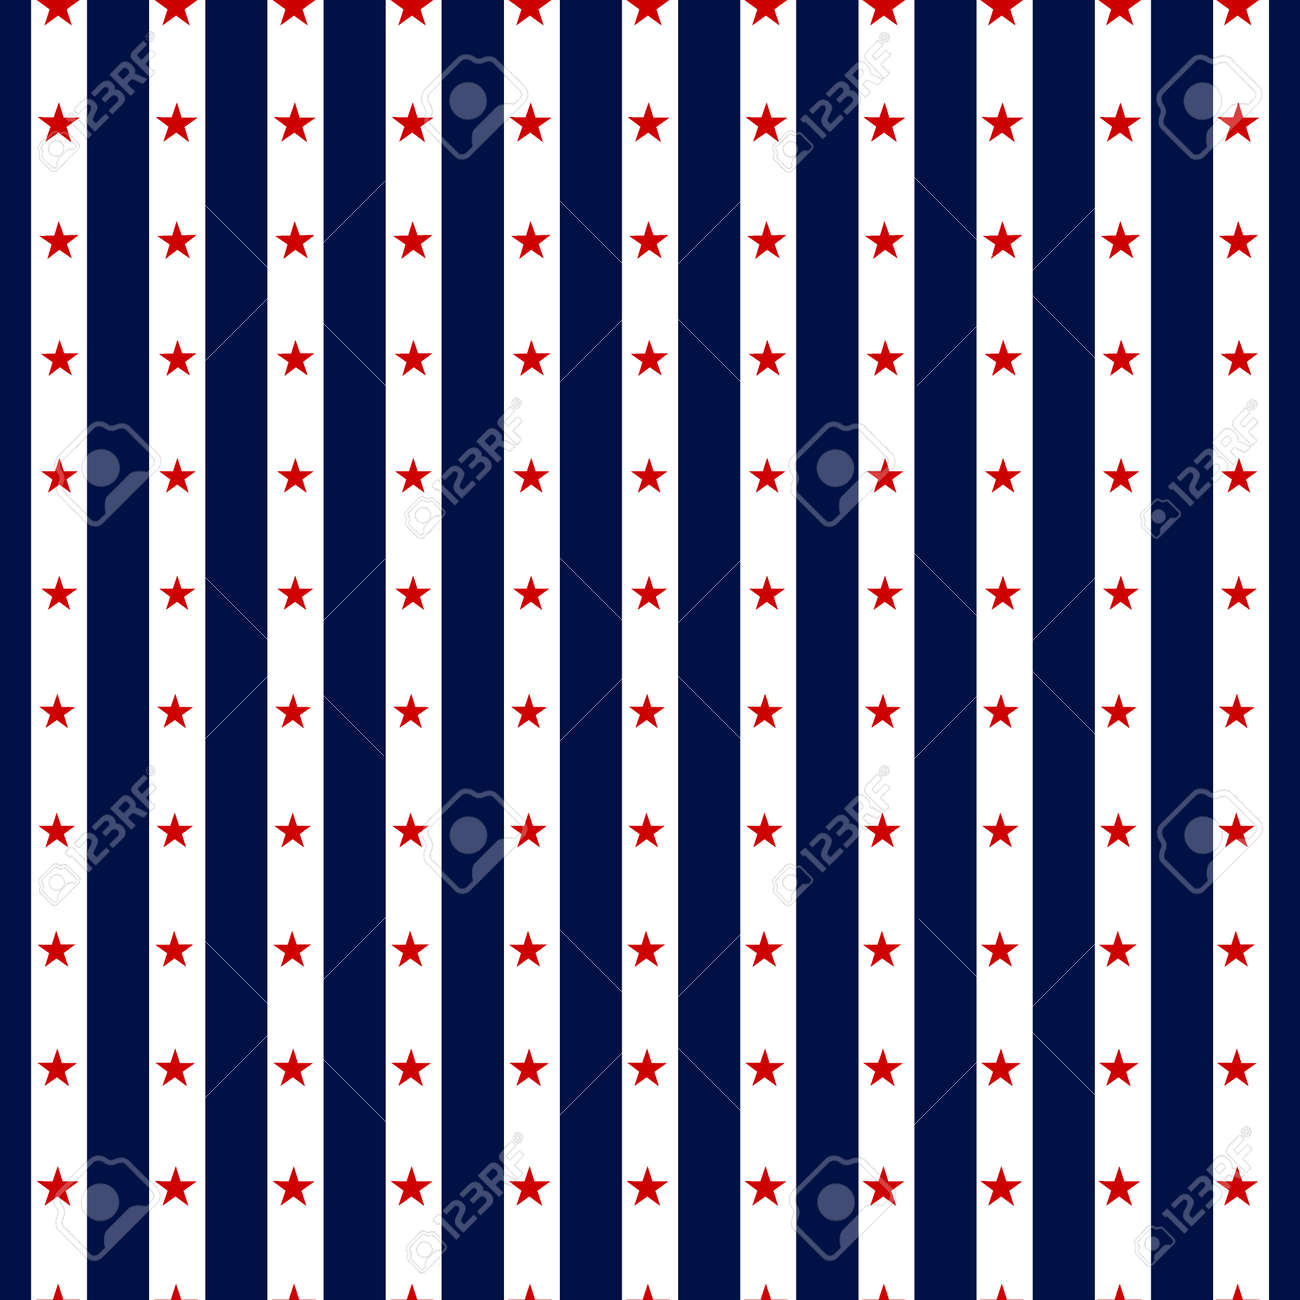 Hapy Independence Day seamless pattern . Memorial day. 4th of July. Set of American backgrounds. Collection of seamless patterns in traditional red, blue and white colors. USA flag vector. - 57799828